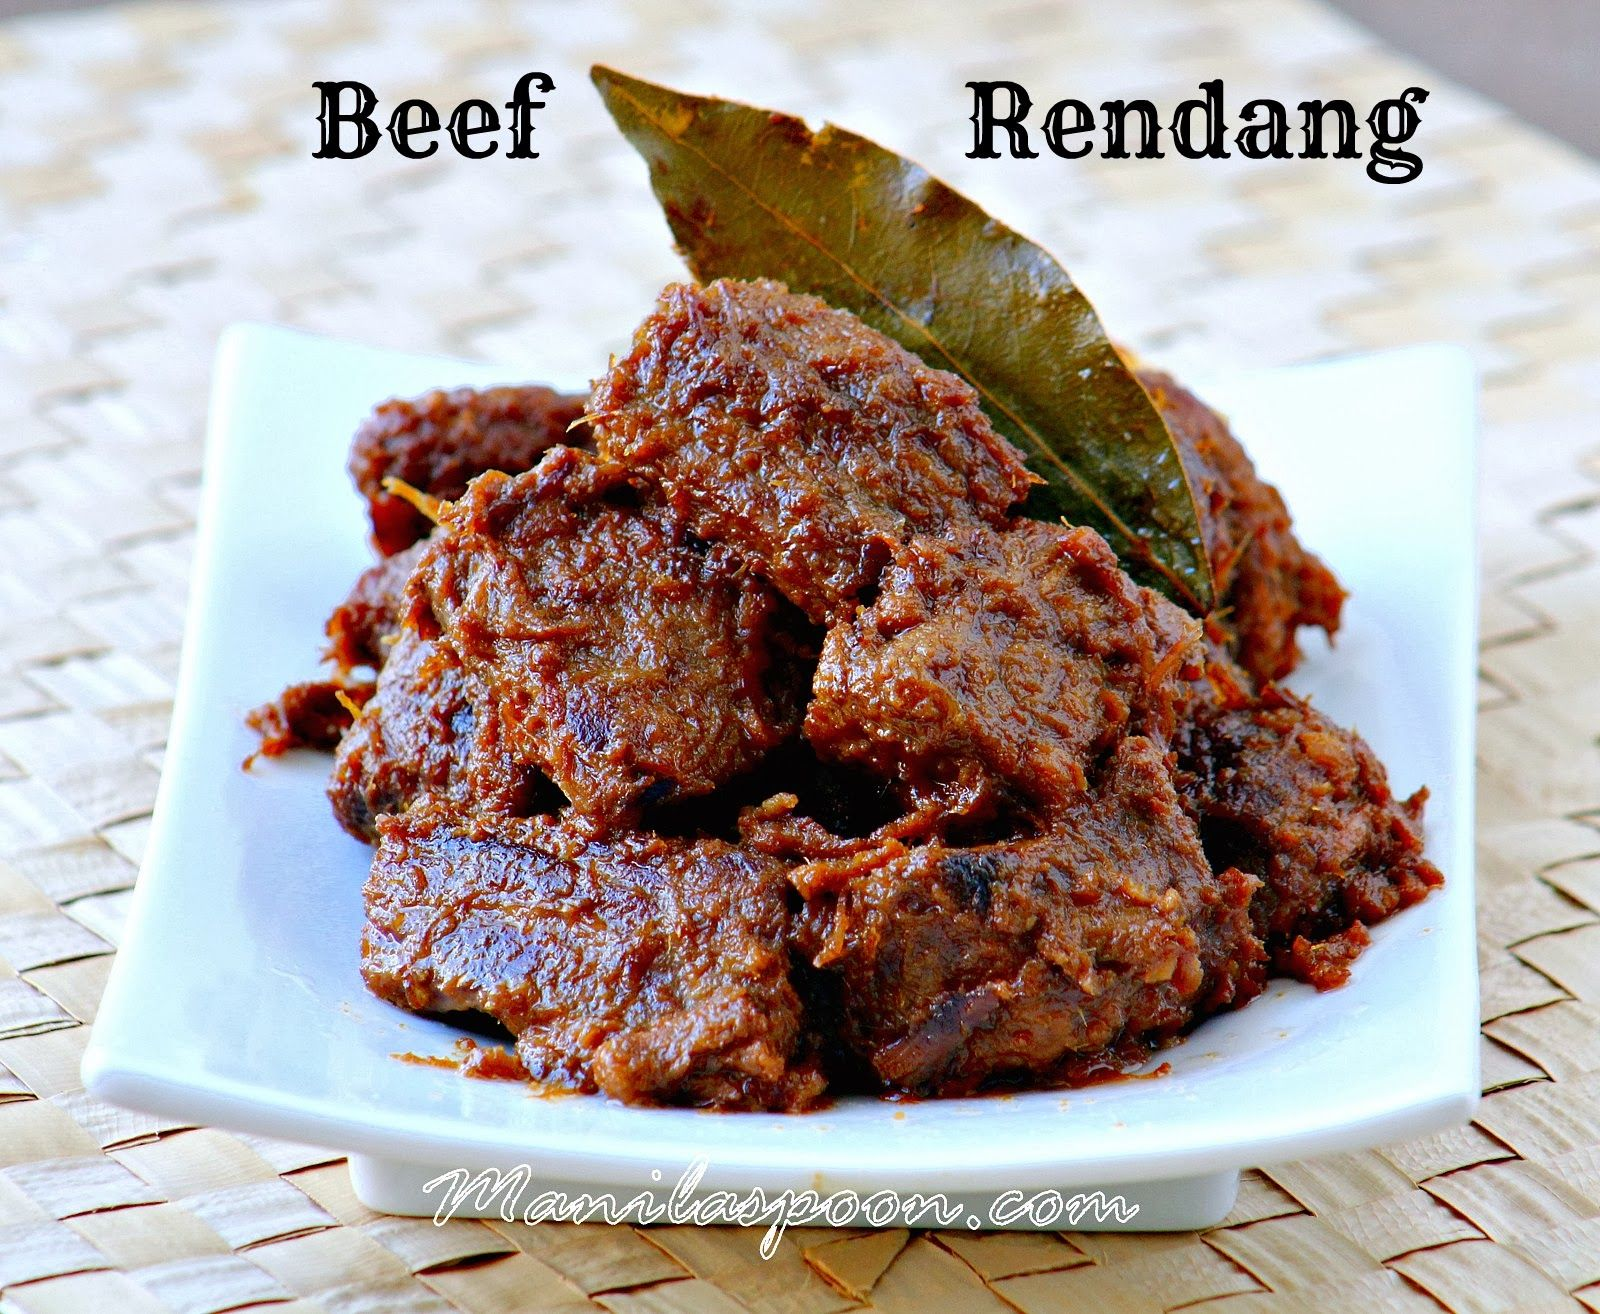 BEEF RENDANG - Chunks of beef are slowly cooked in coconut milk and spices  until the